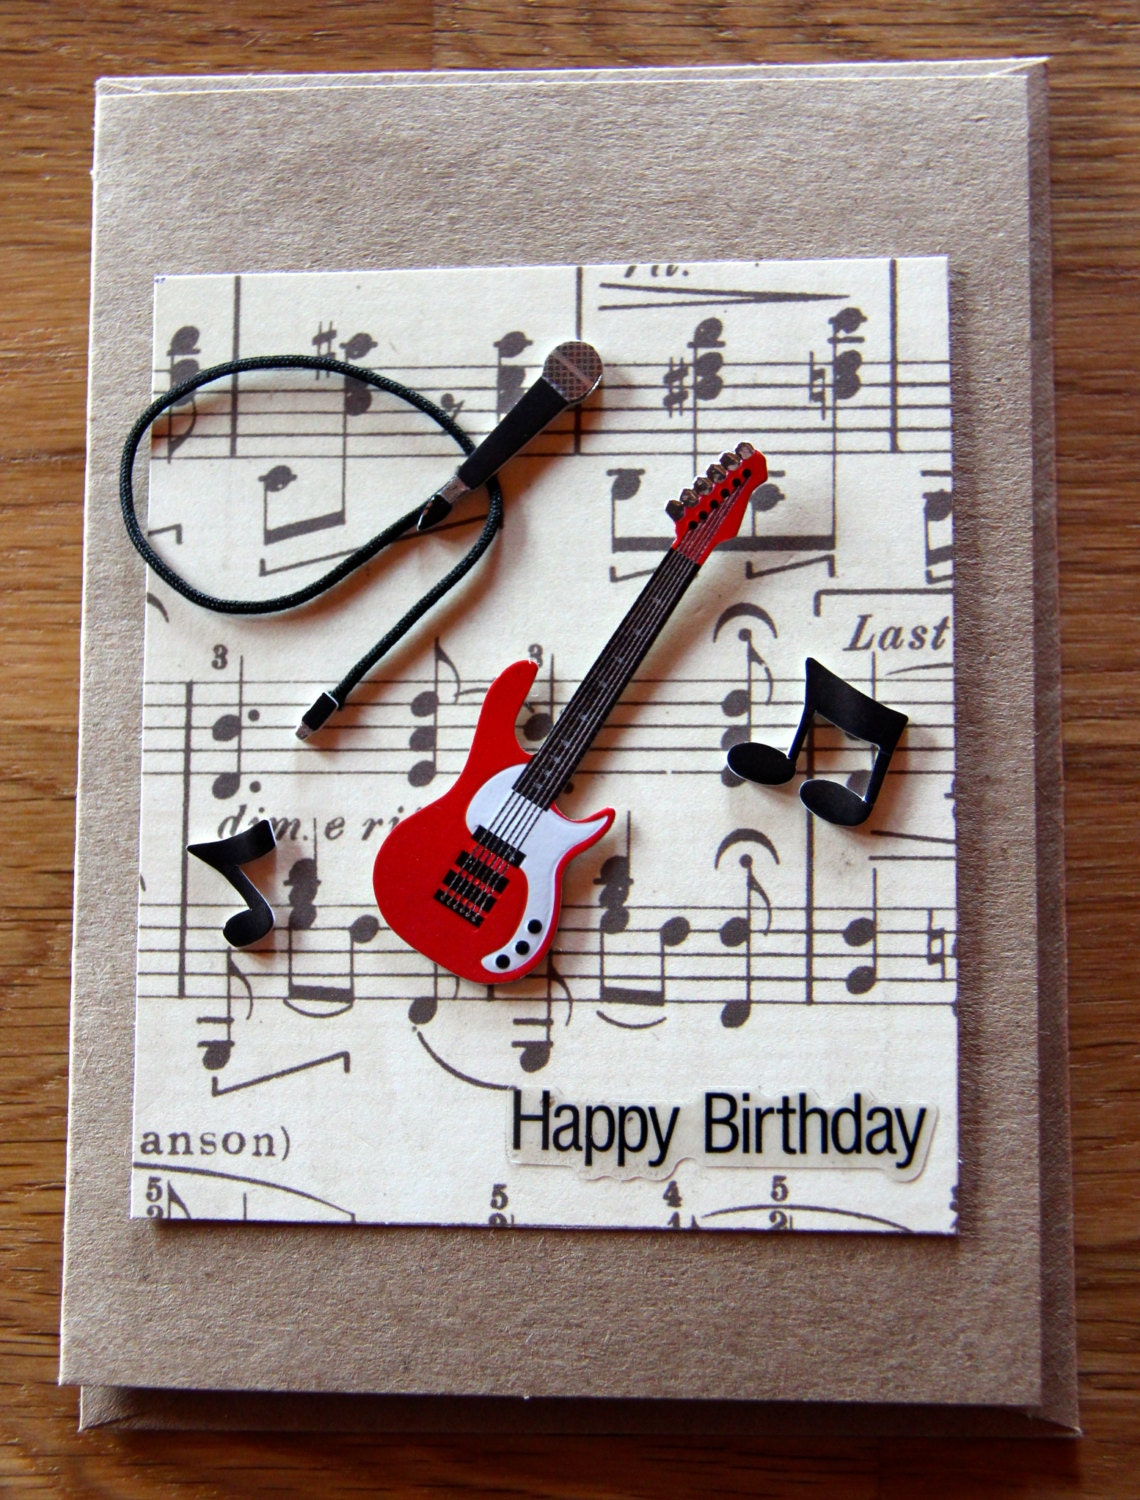 Handmade Cards Handmade Birthday Cards Band Card Music – Musical Cards for Birthday